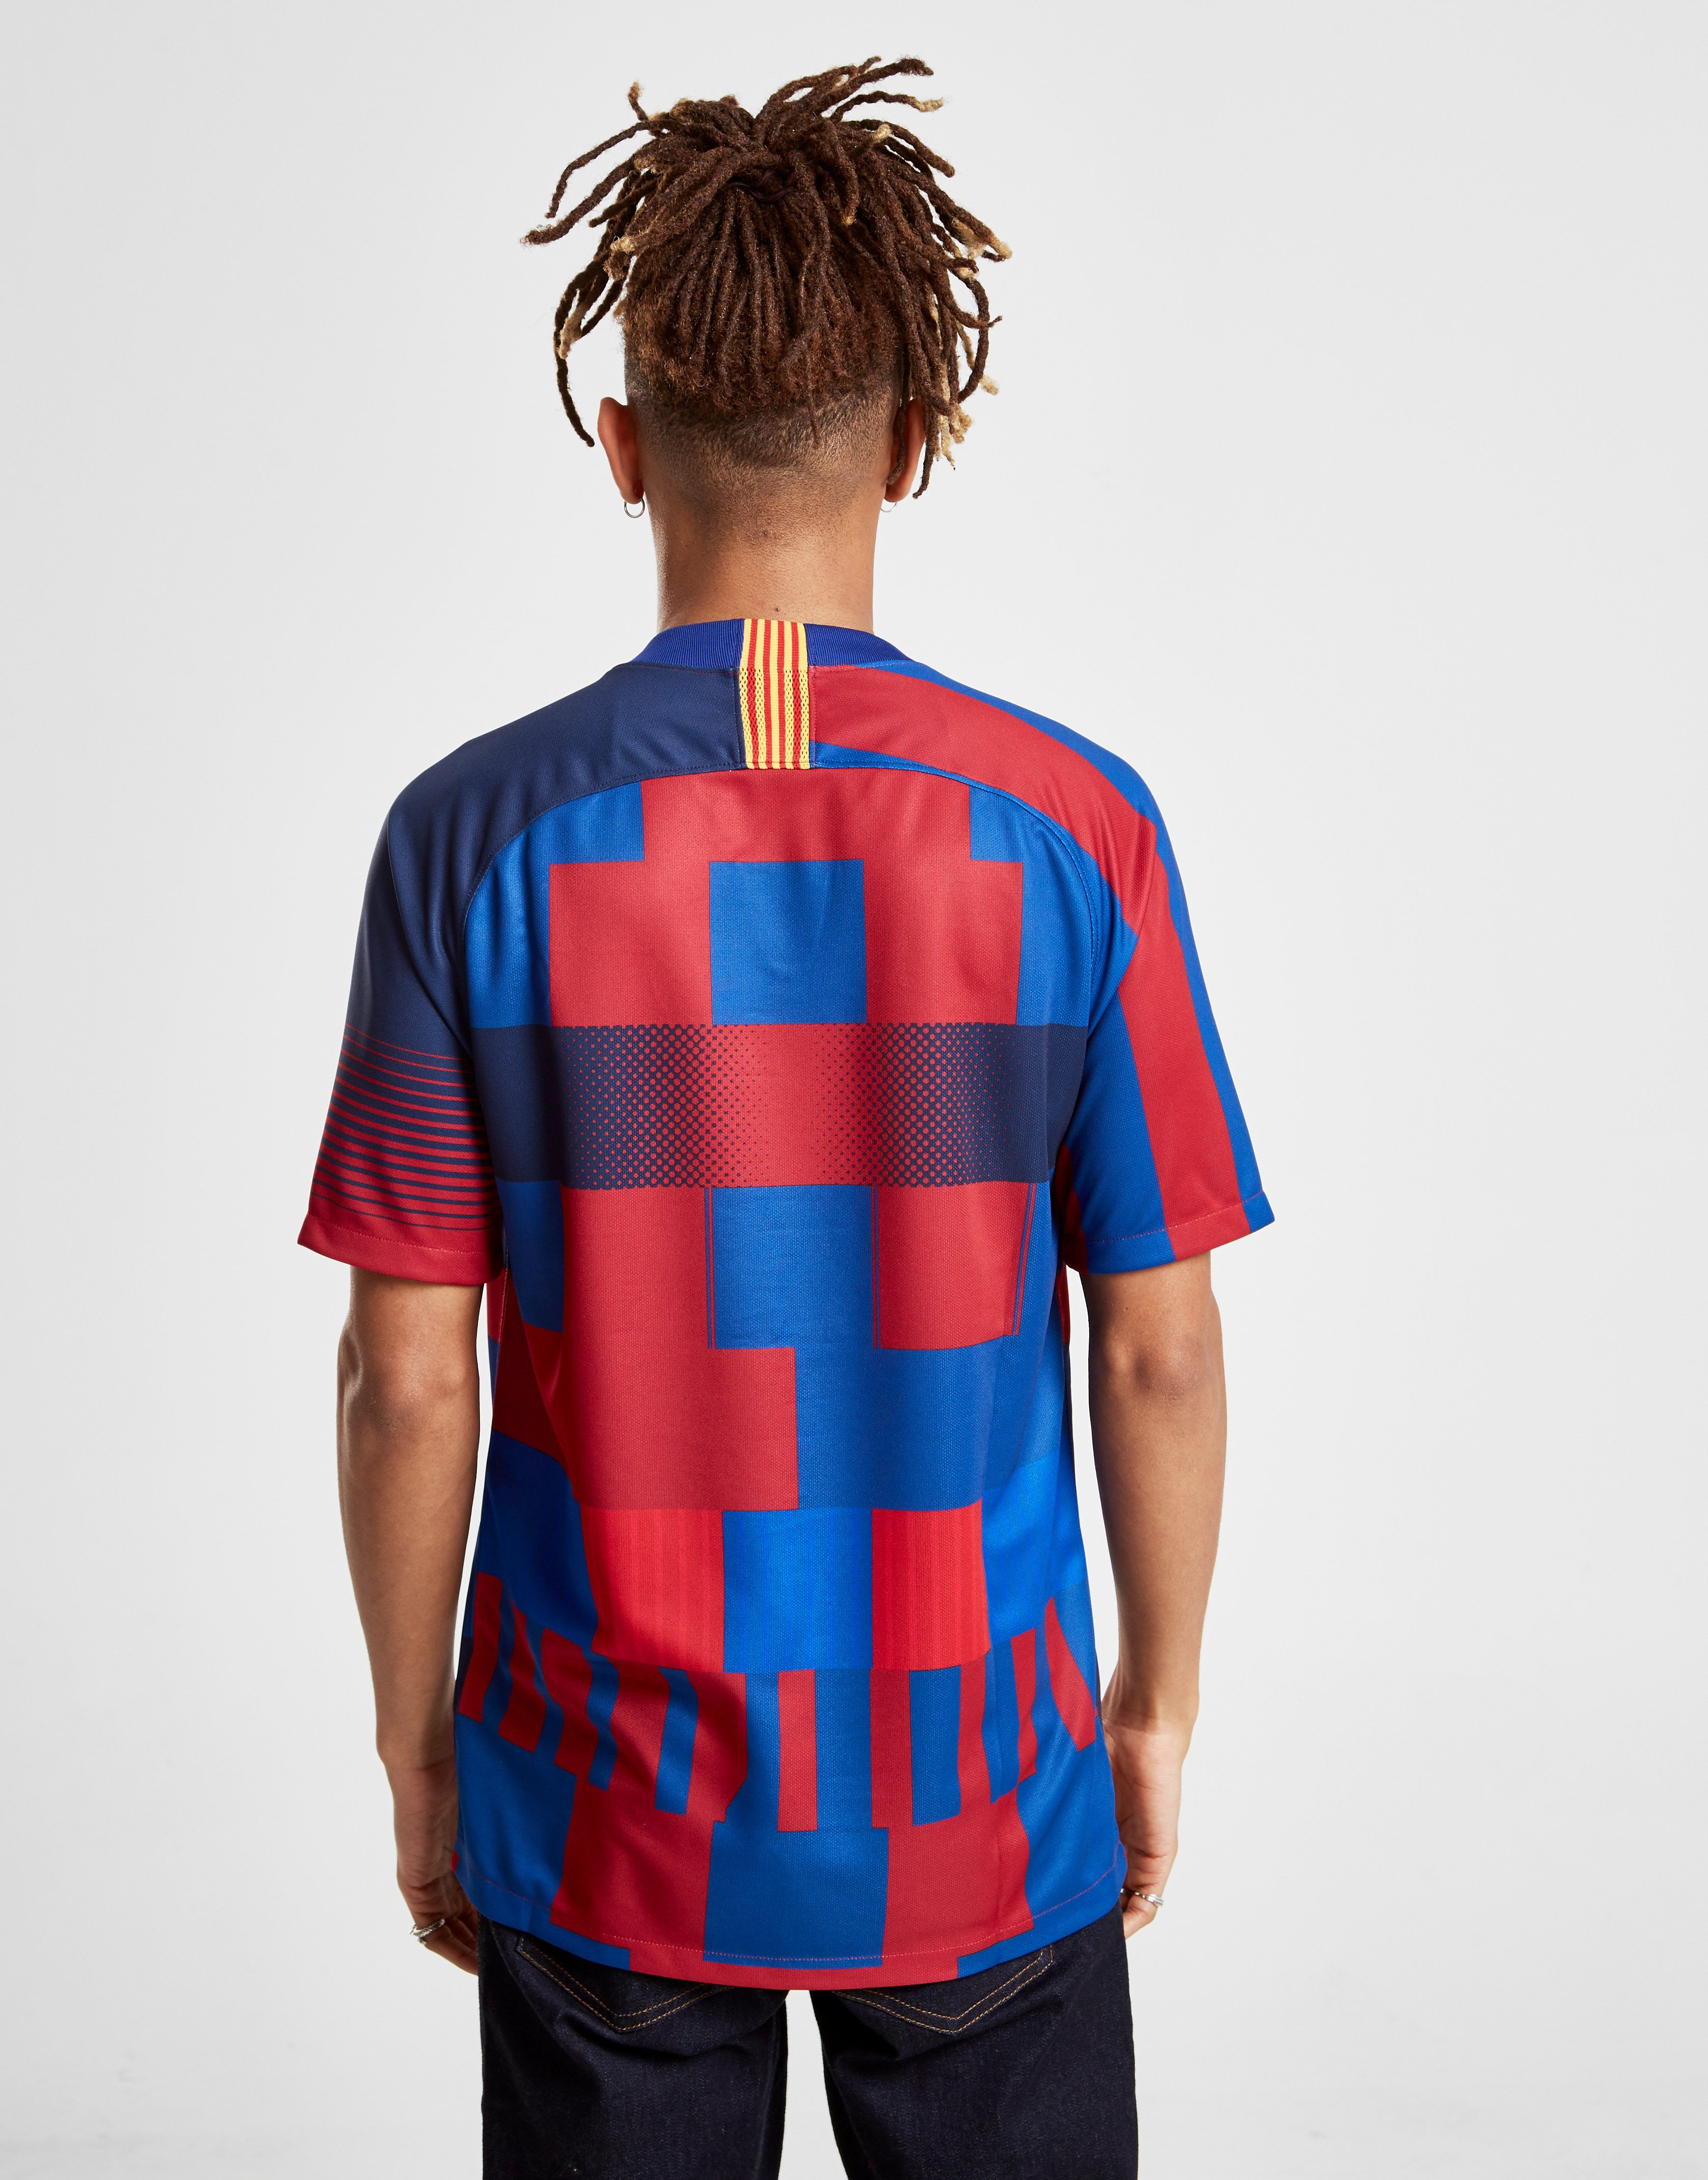 Nike FC Barcelona 20th Anniversary Shirt